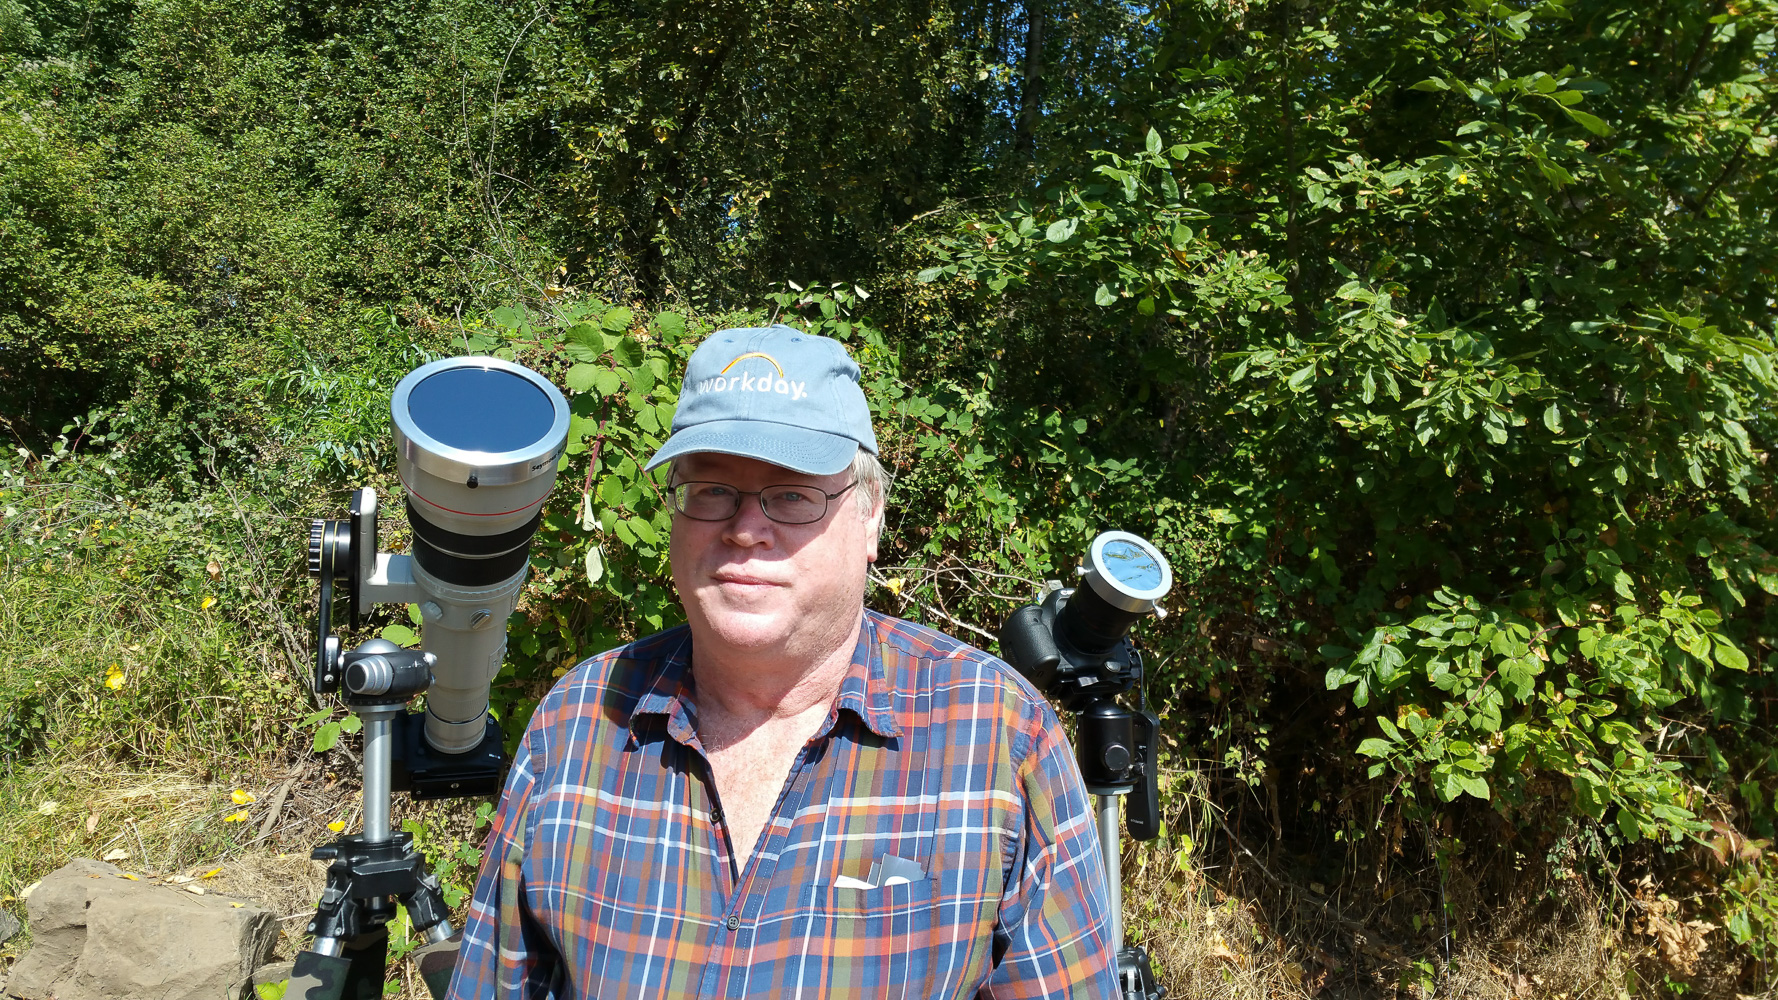 Me with the main cameras I shot with and their solar filters attached. Next time i will remeber to bring an extra camera to shoot with during totality.